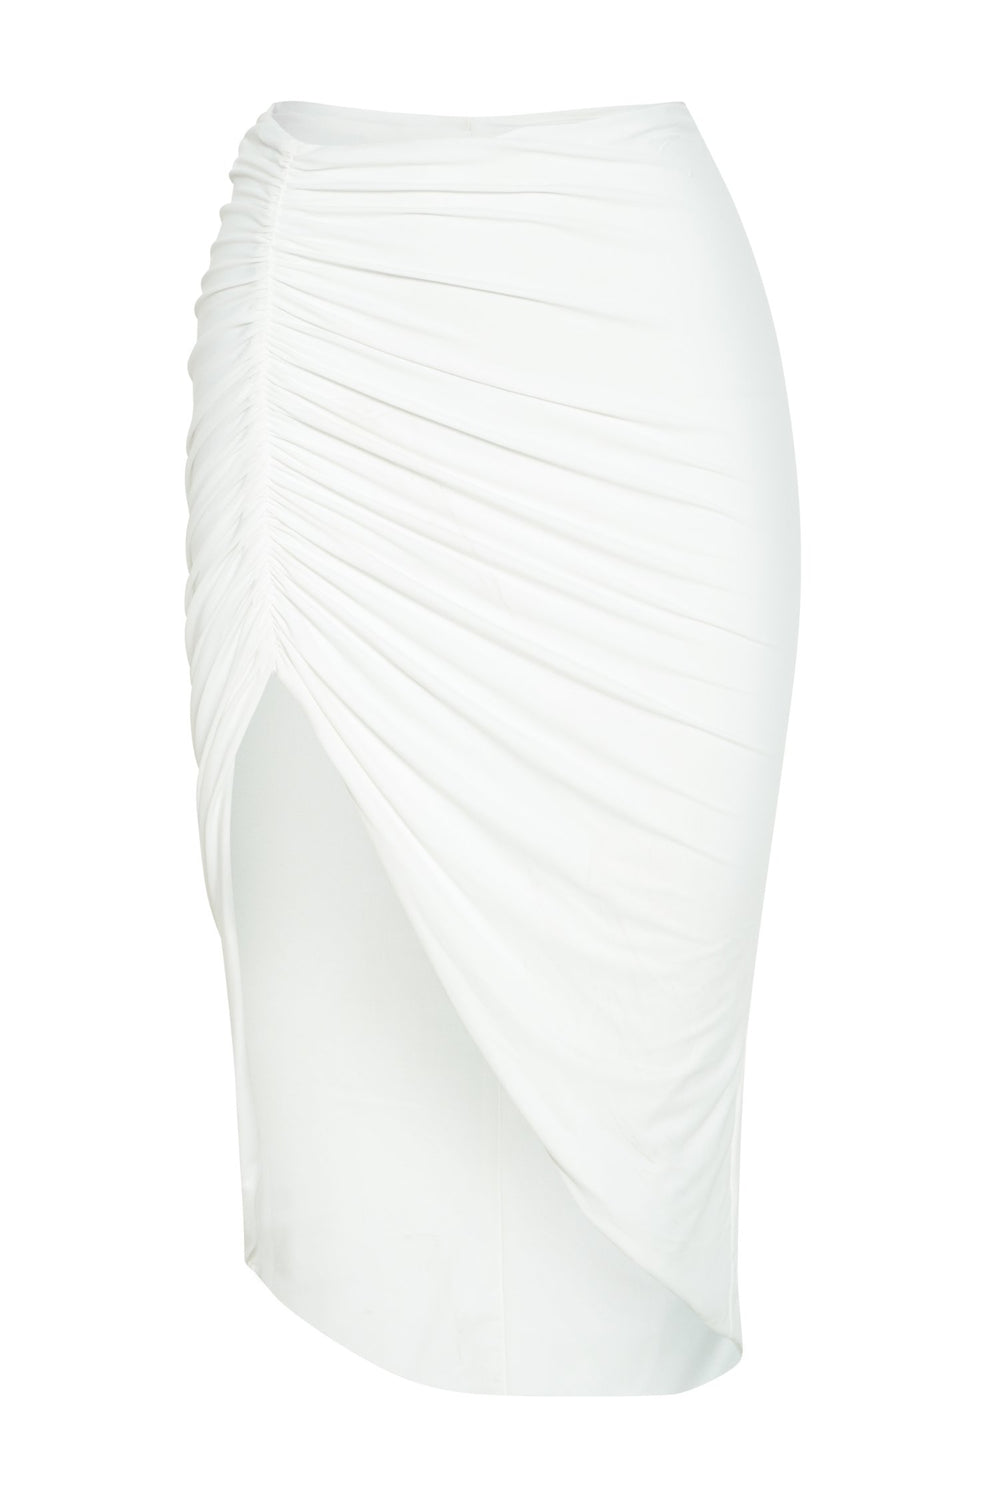 Molly Ruched Side Midi Skirt  - White